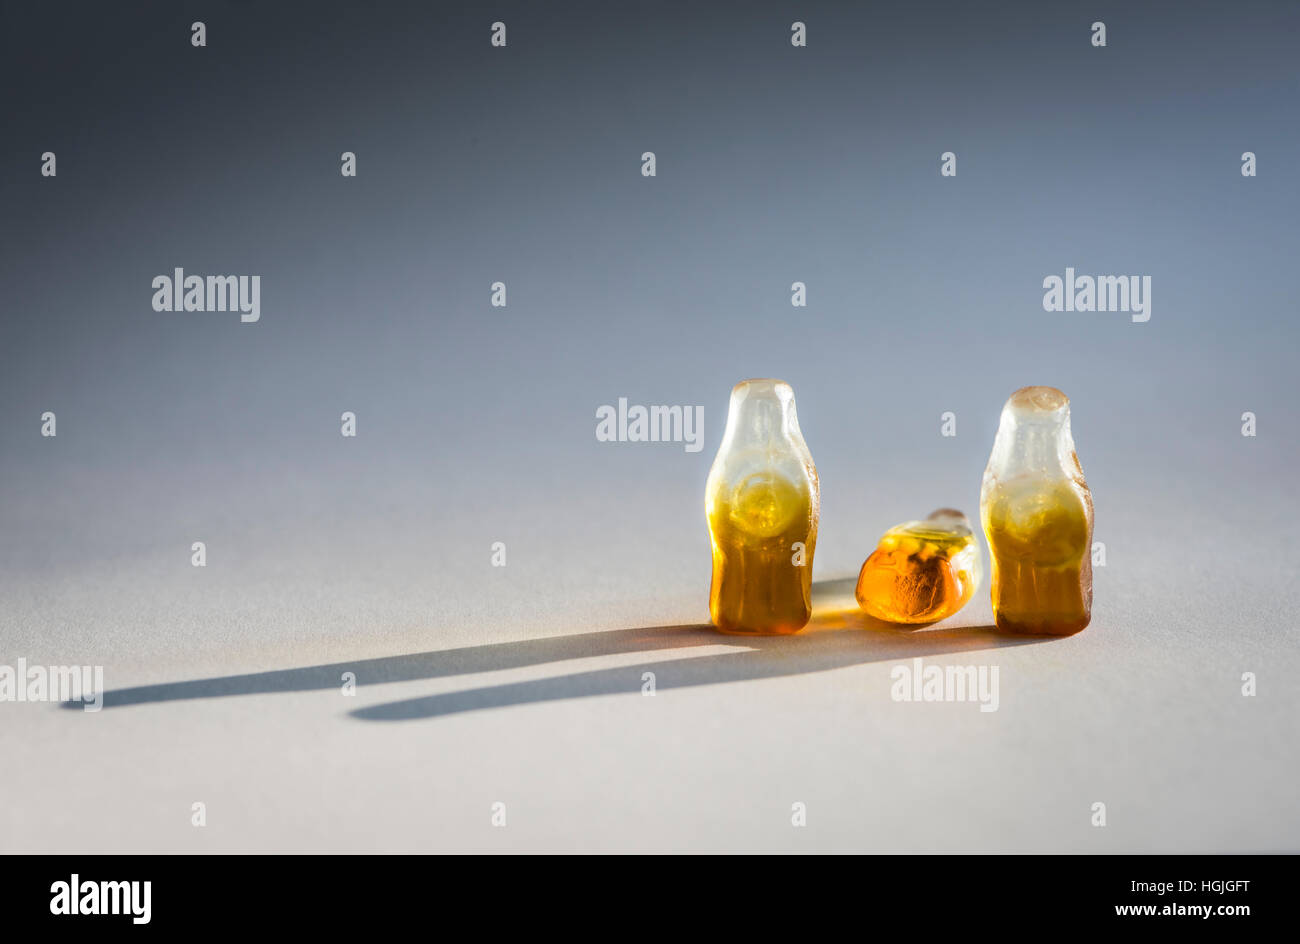 Group of three soft candy / jelly beans in the shape of bottles. Looks like group of three people. Middle bottle Stock Photo